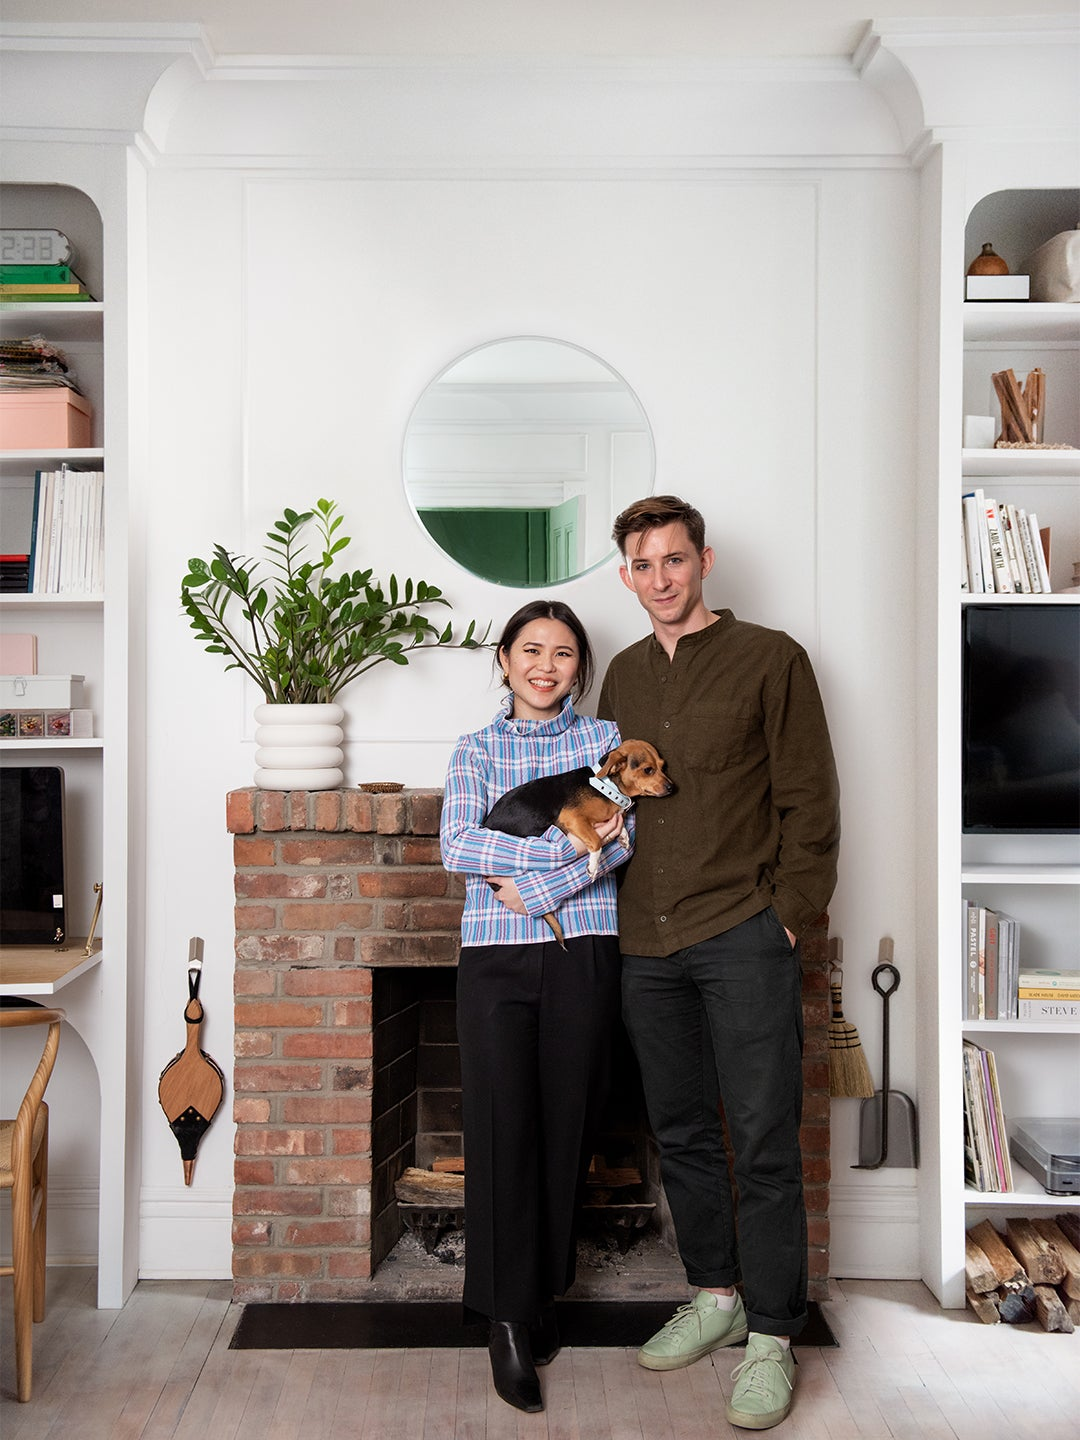 00-FEATURE-Laura-Yeh-Home-Tour-Domino